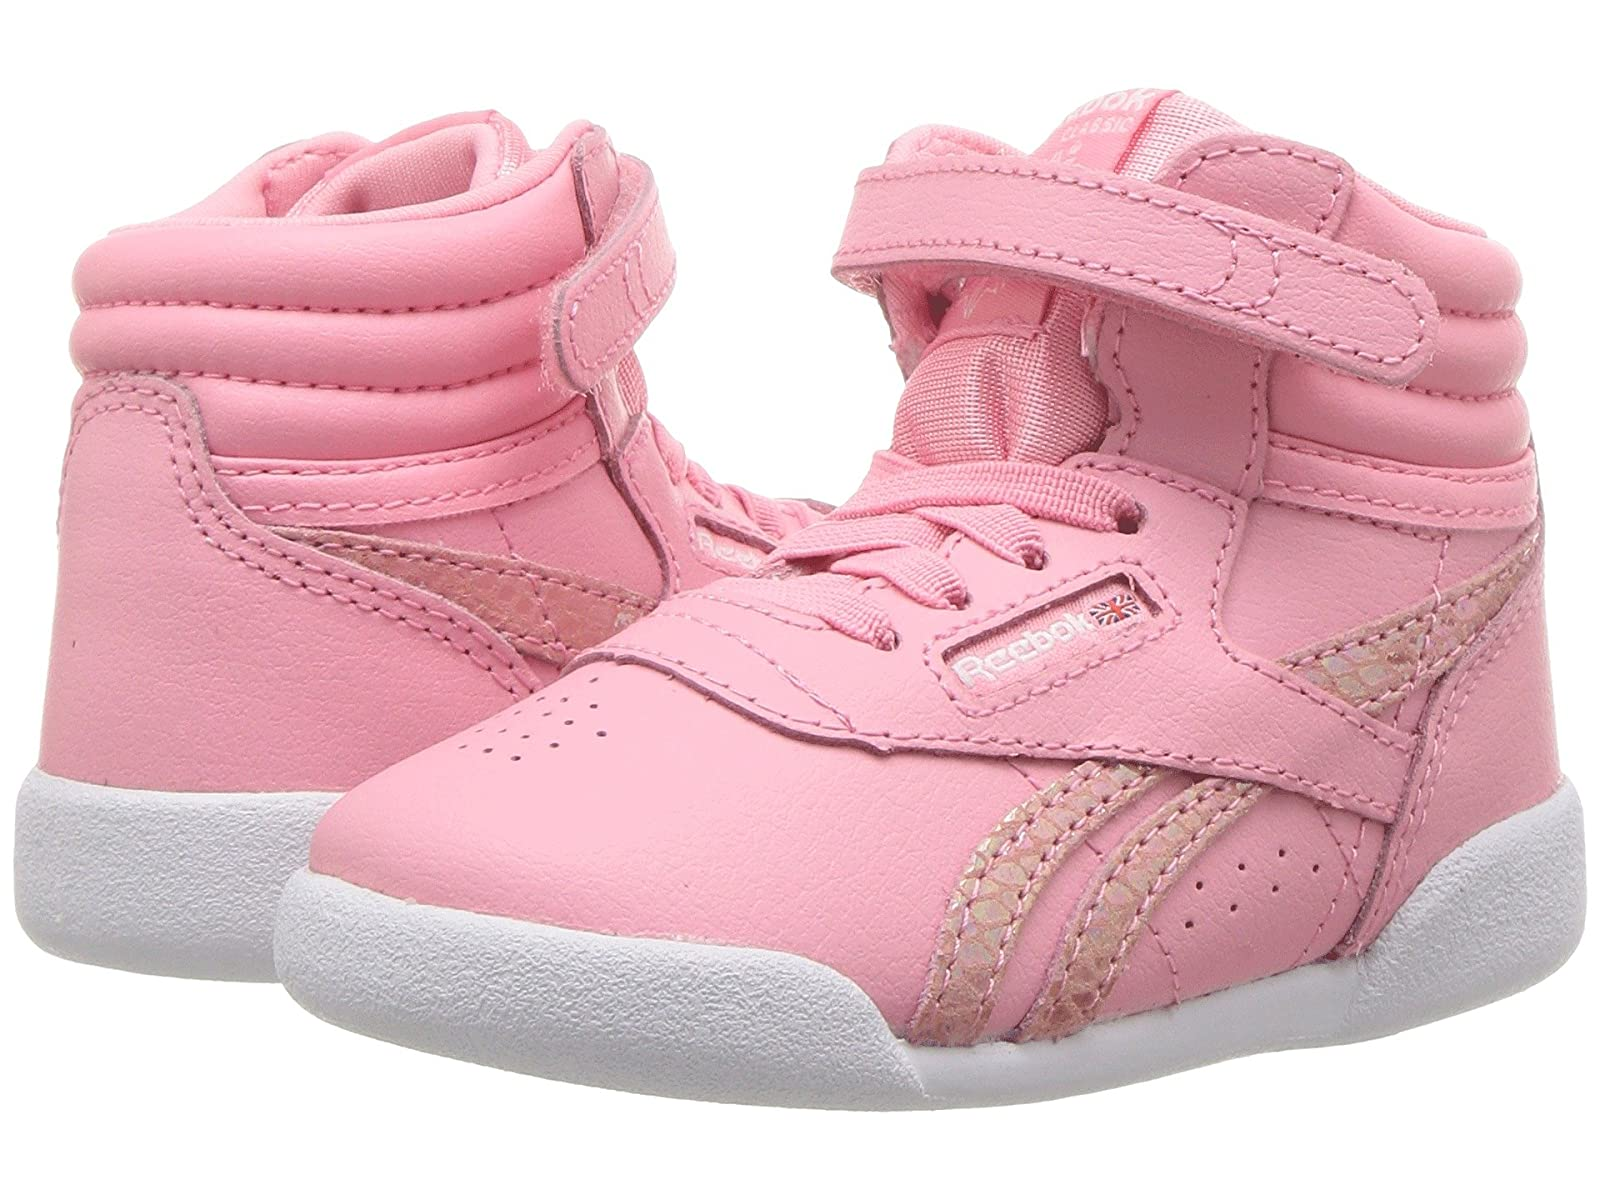 Reebok Kids F/S Hi Spring (Infant/Toddler)Cheap and distinctive eye-catching shoes